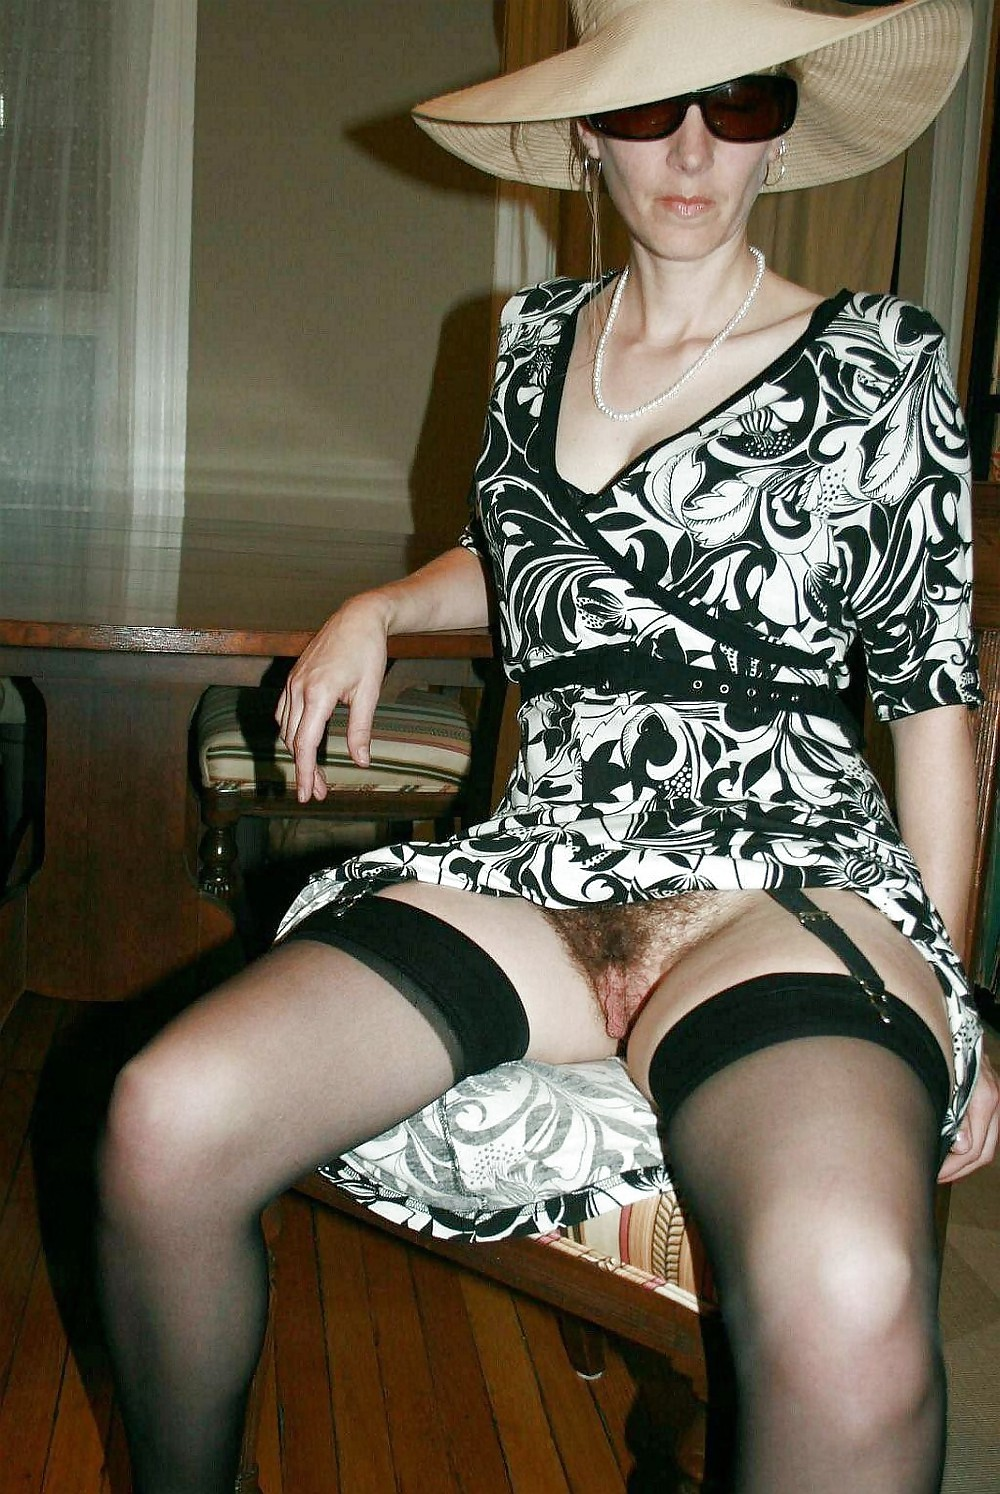 upskirts galleries English photo